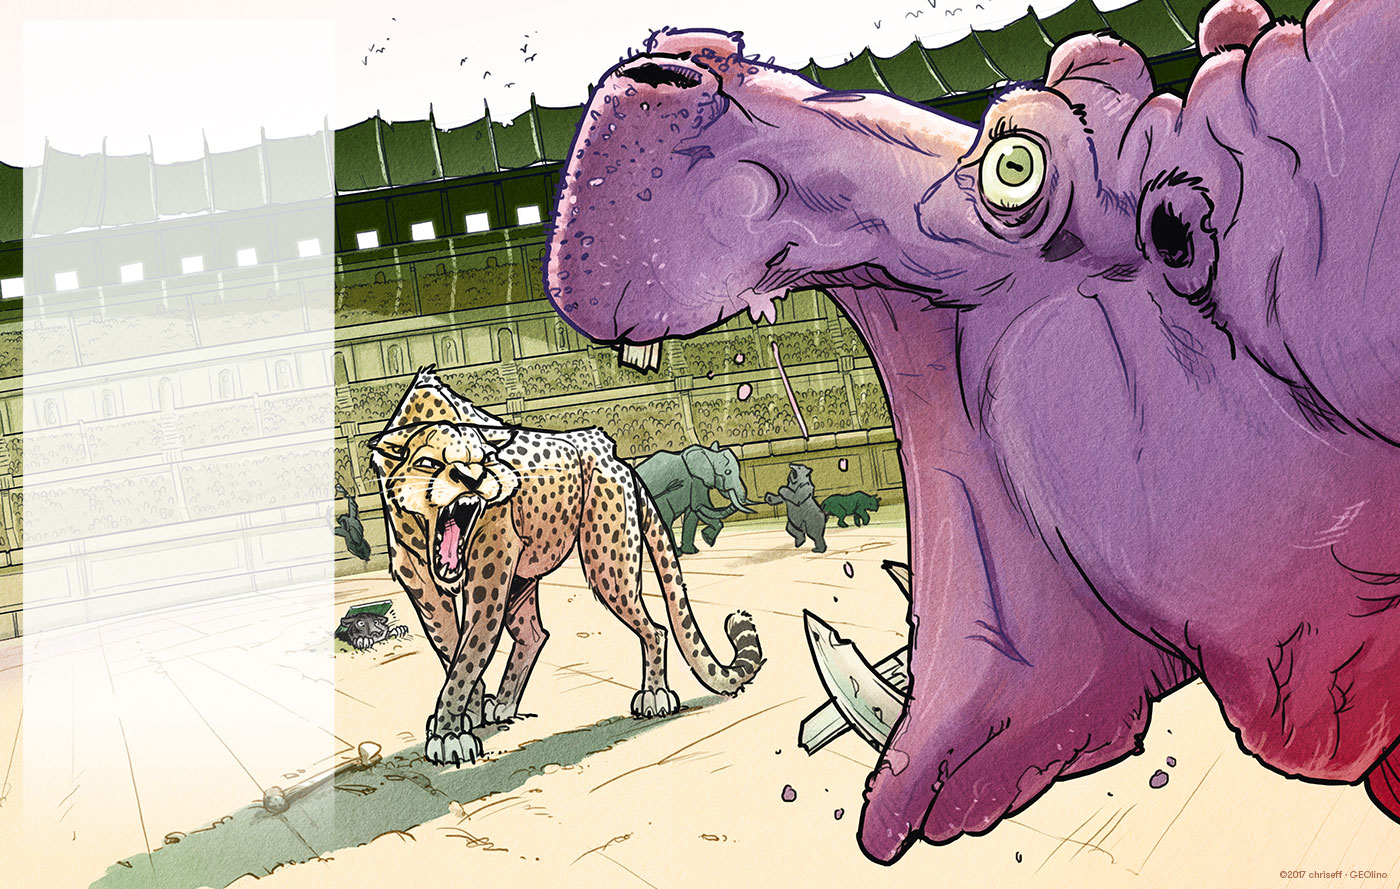 editorial illustration kolosseum with hippo vs cheetah for geolino - christian effenberger